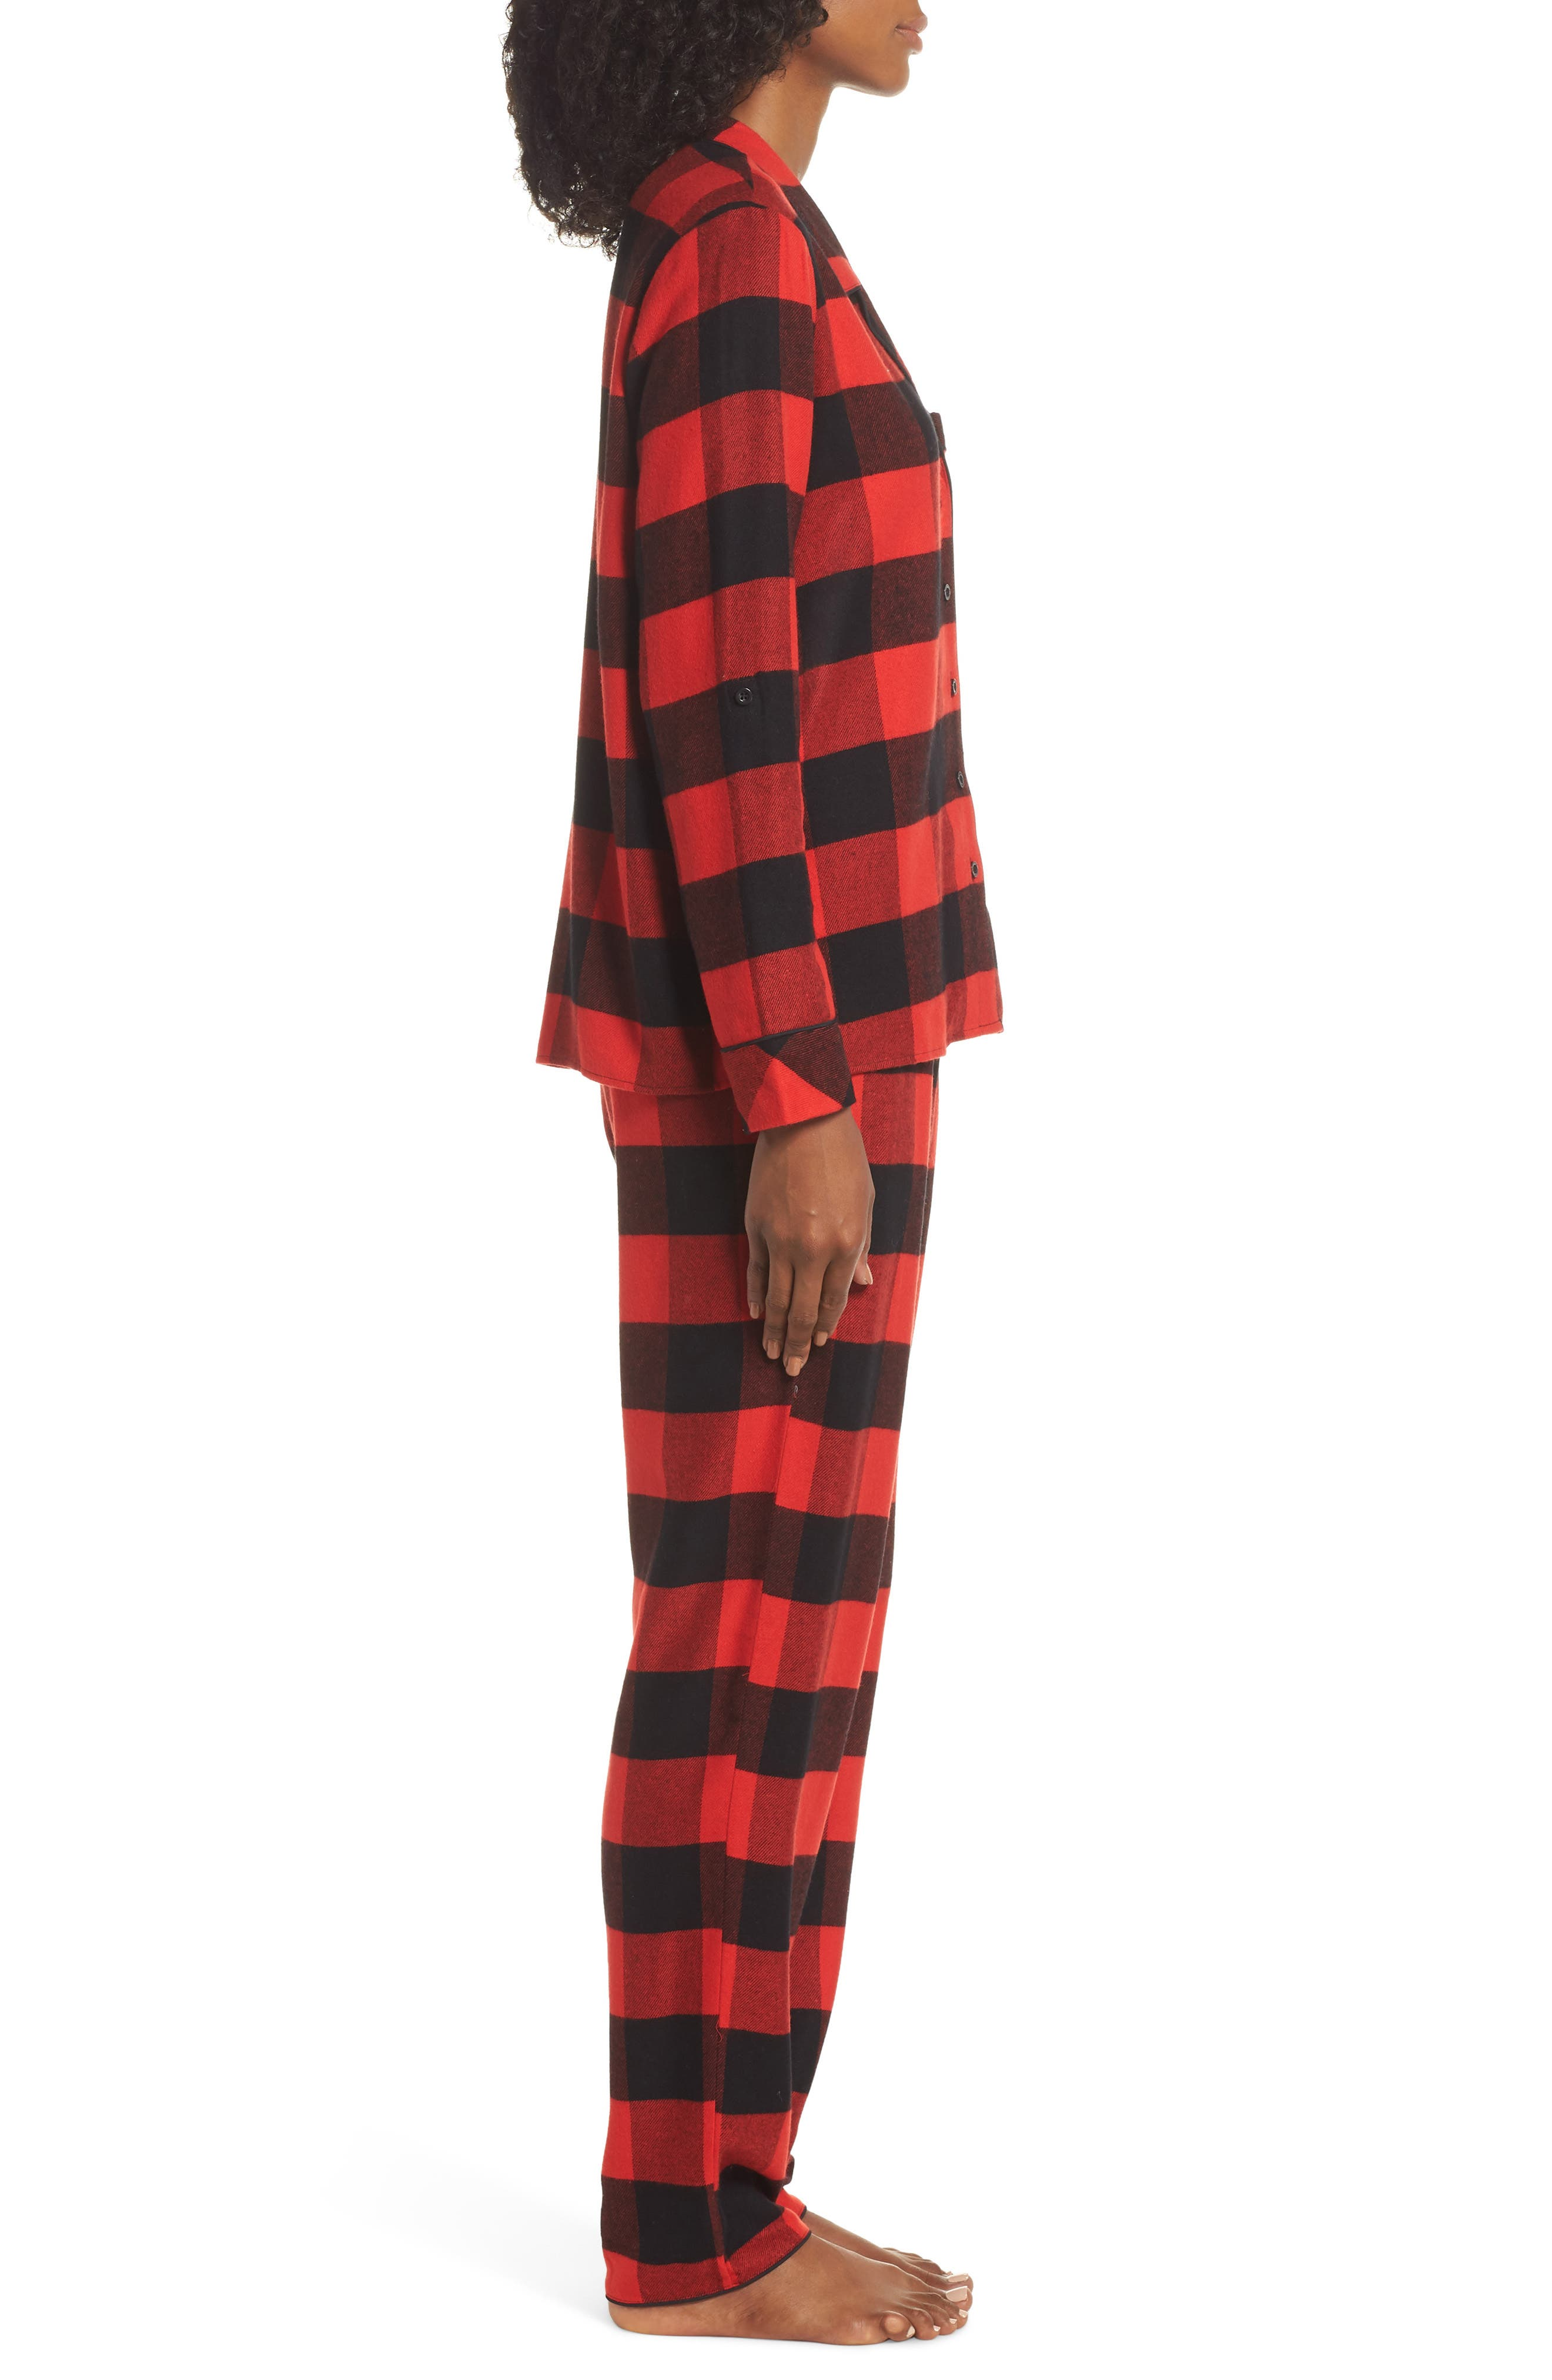 Lingerie Starlight Flannel Pajamas,                             Alternate thumbnail 3, color,                             RED BLOOM LARGE BUFFALO CHECK